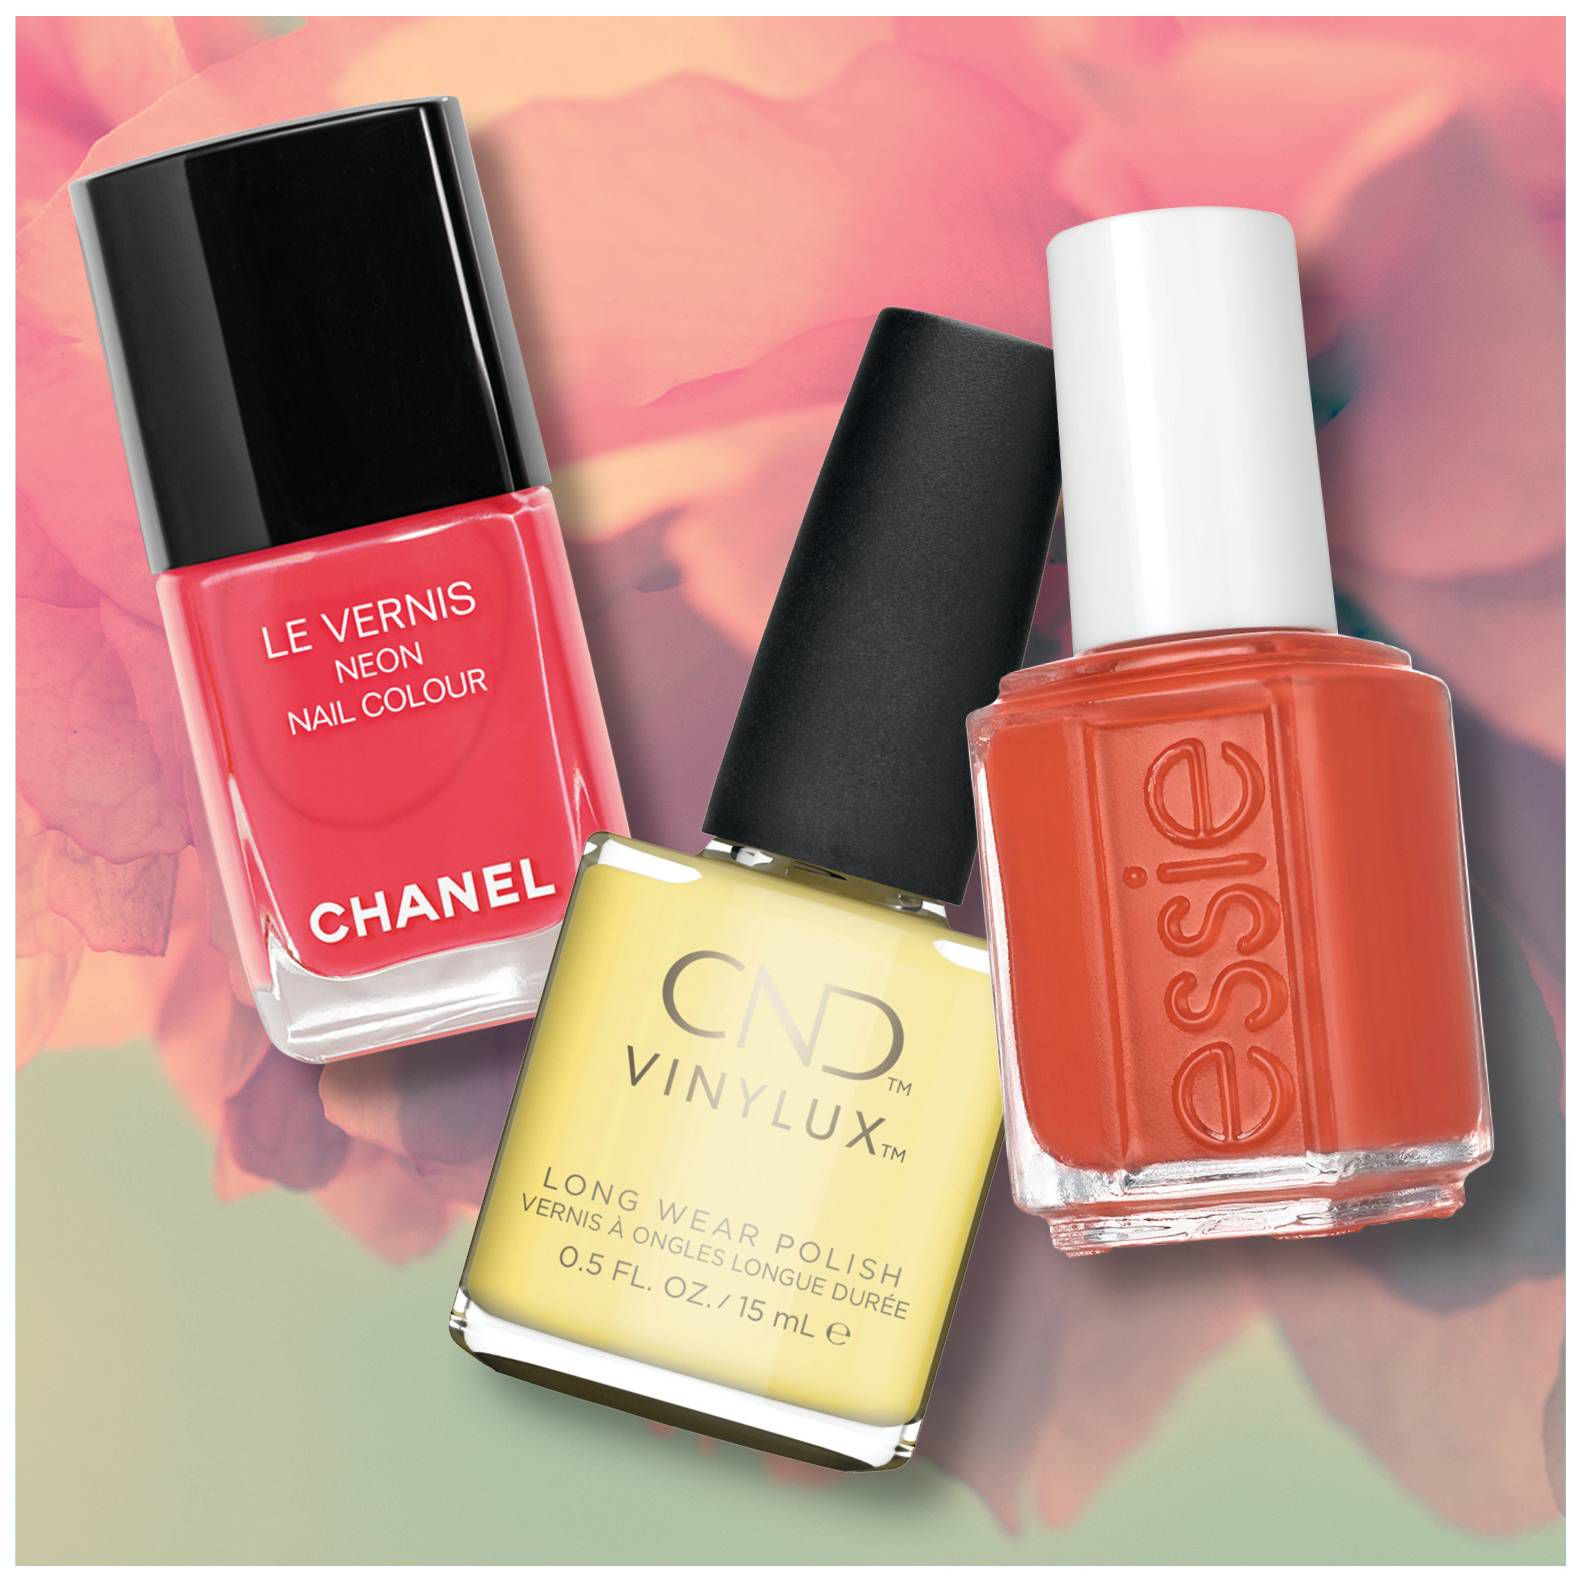 Brighten up your spring look with these fruity nail polish shades ...